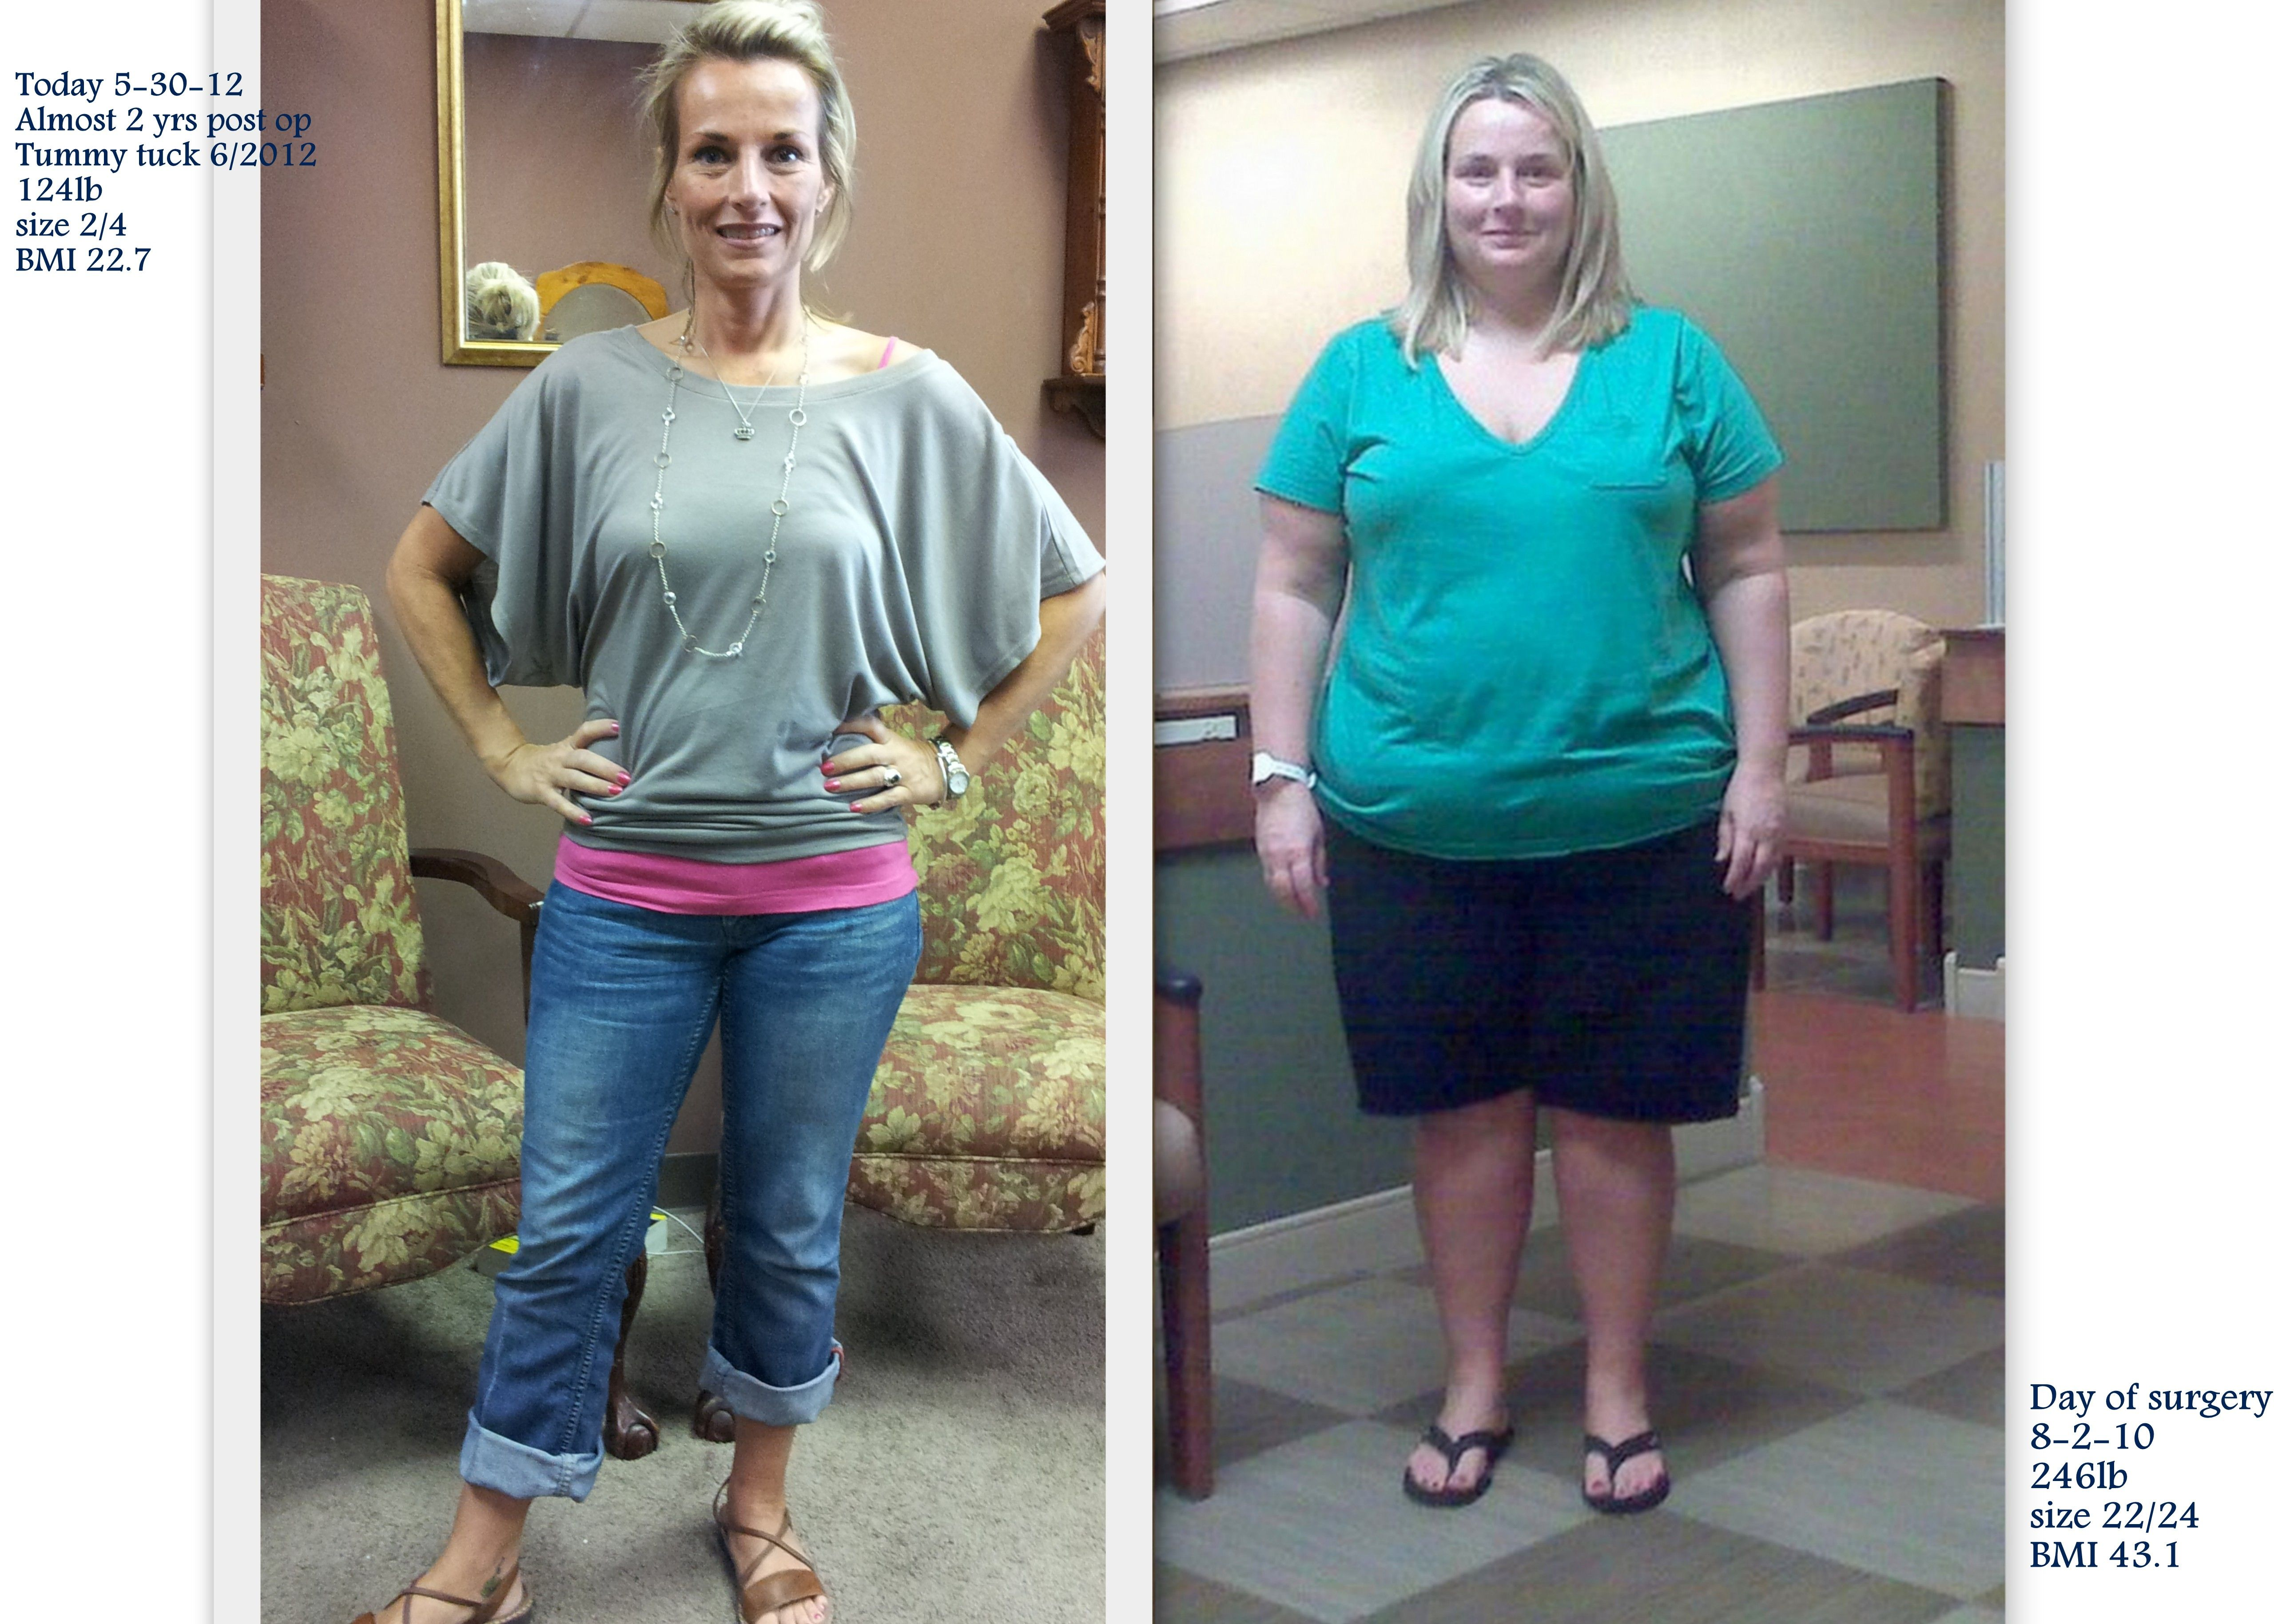 Before And After Roux En Y Gastric Bypass And After Tummy Tuck God